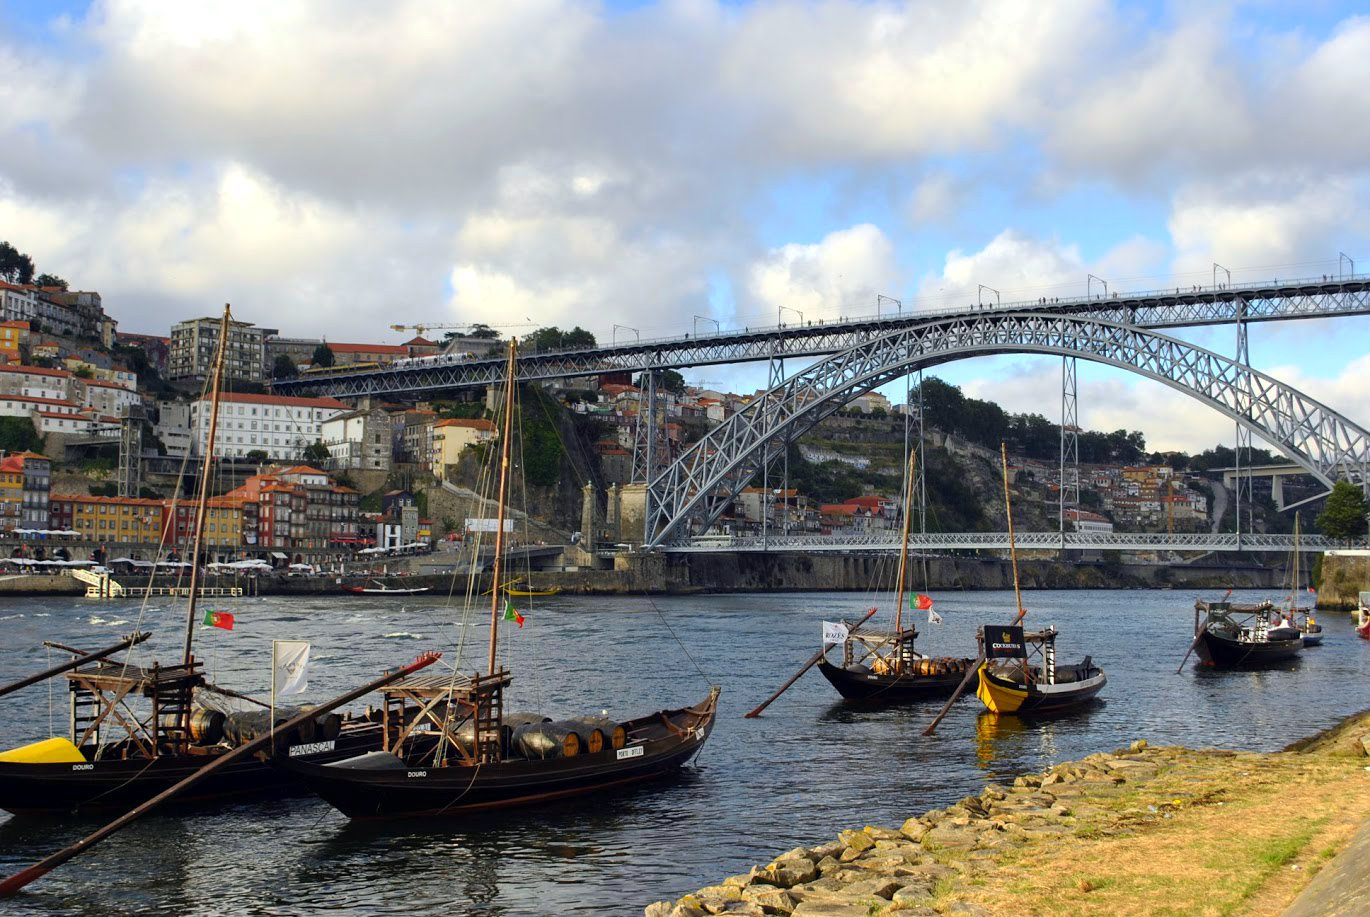 Rebelo Boats Porto. From its old medieval quarter to unique modern architecture, Porto doesn't disappoint. Read my favorite things to do places to visit in Porto.